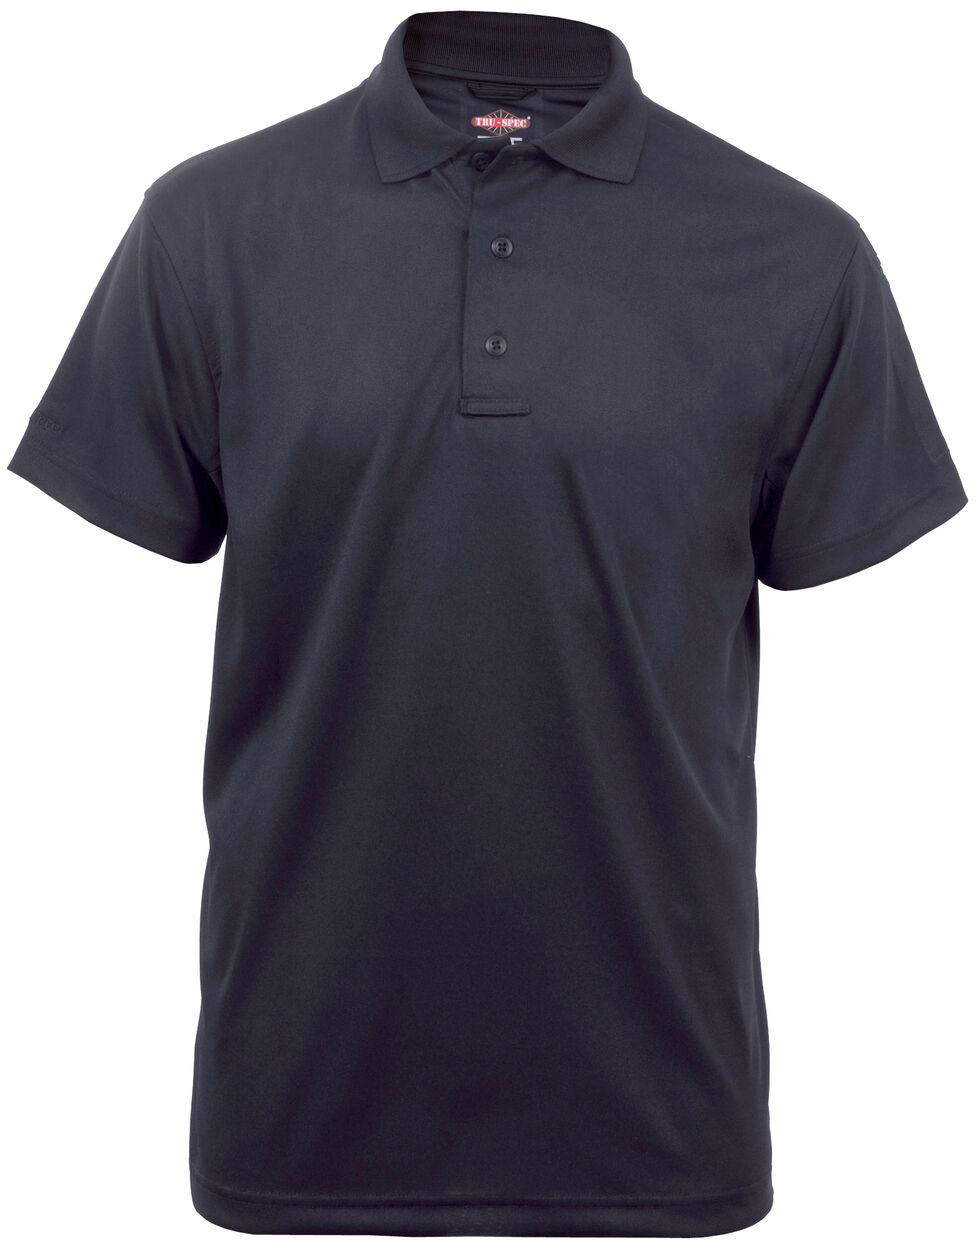 Tru-Spec Men's 24-7 Series Short Sleeve Performance Polo Shirt - Extra Large (2XL - 5XL), Black, hi-res